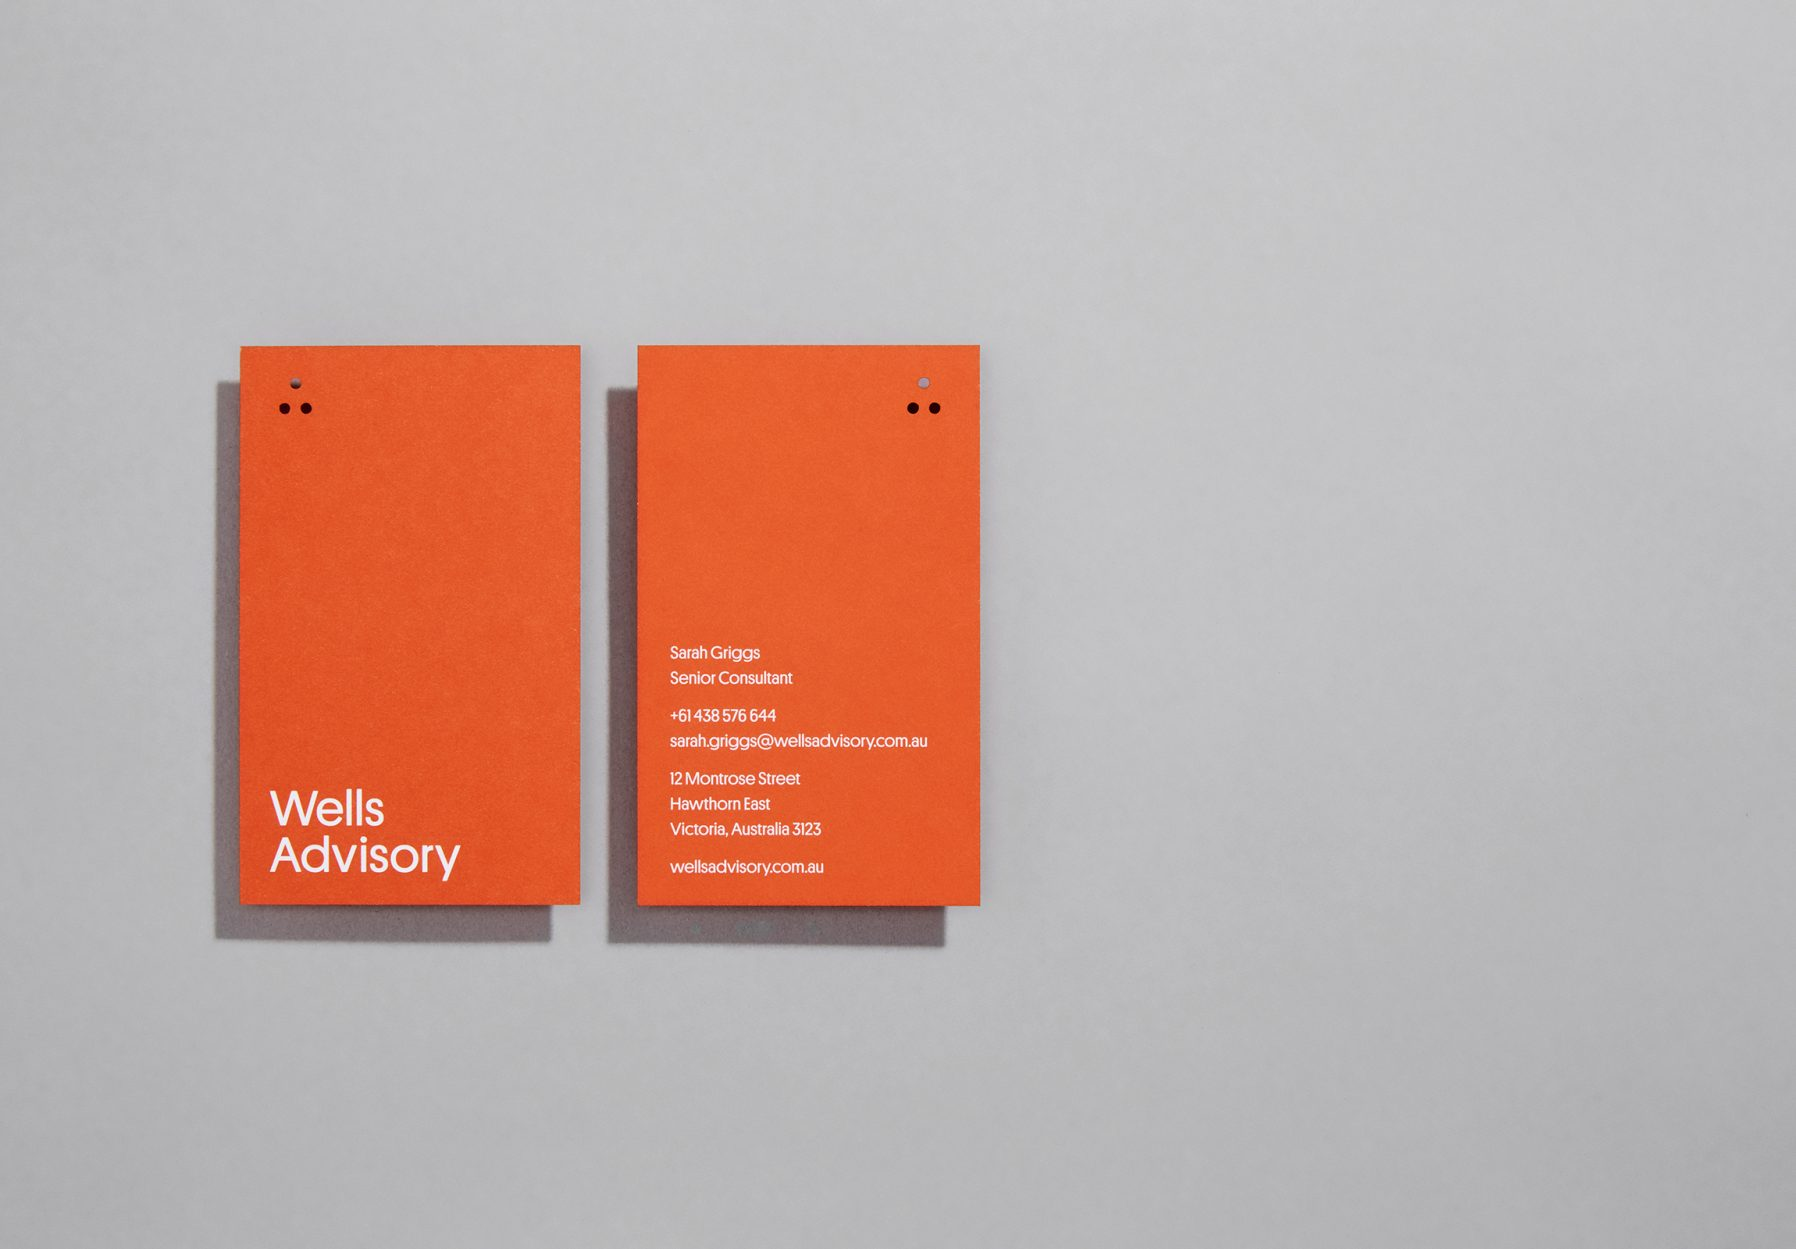 Wells Advisory Corporate Brand Design by JAC& Design Studio Collingwood Melbourne.